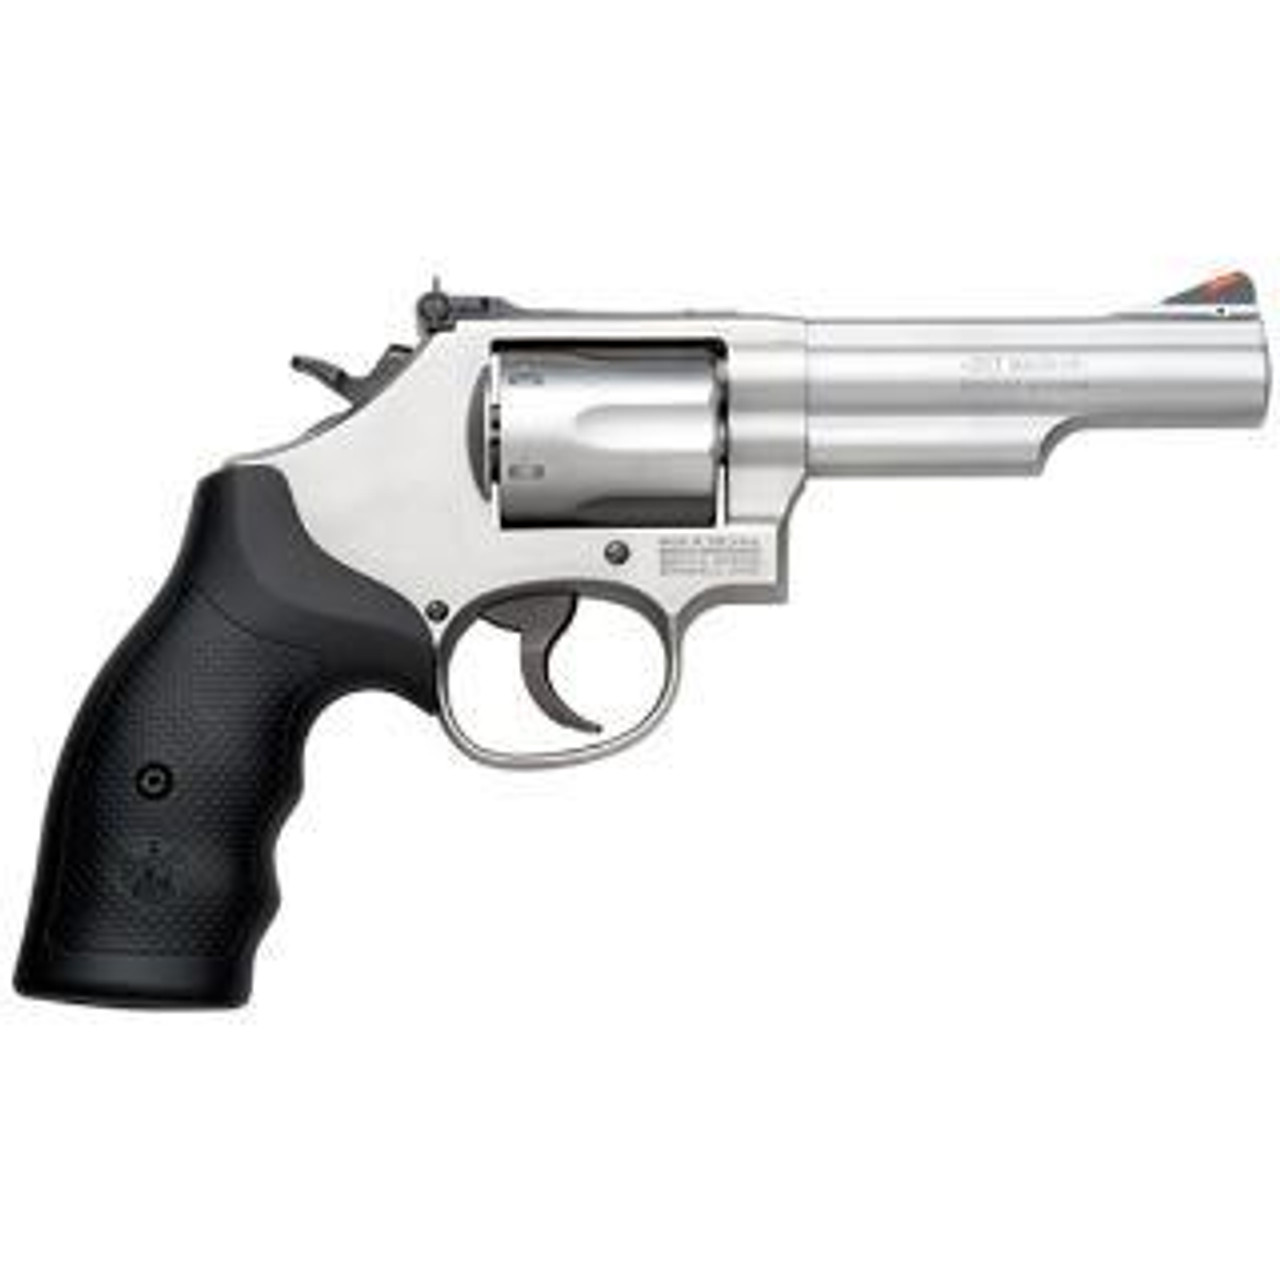 Smith & Wesson 66-8 CALIFORNIA LEGAL - .357Mag